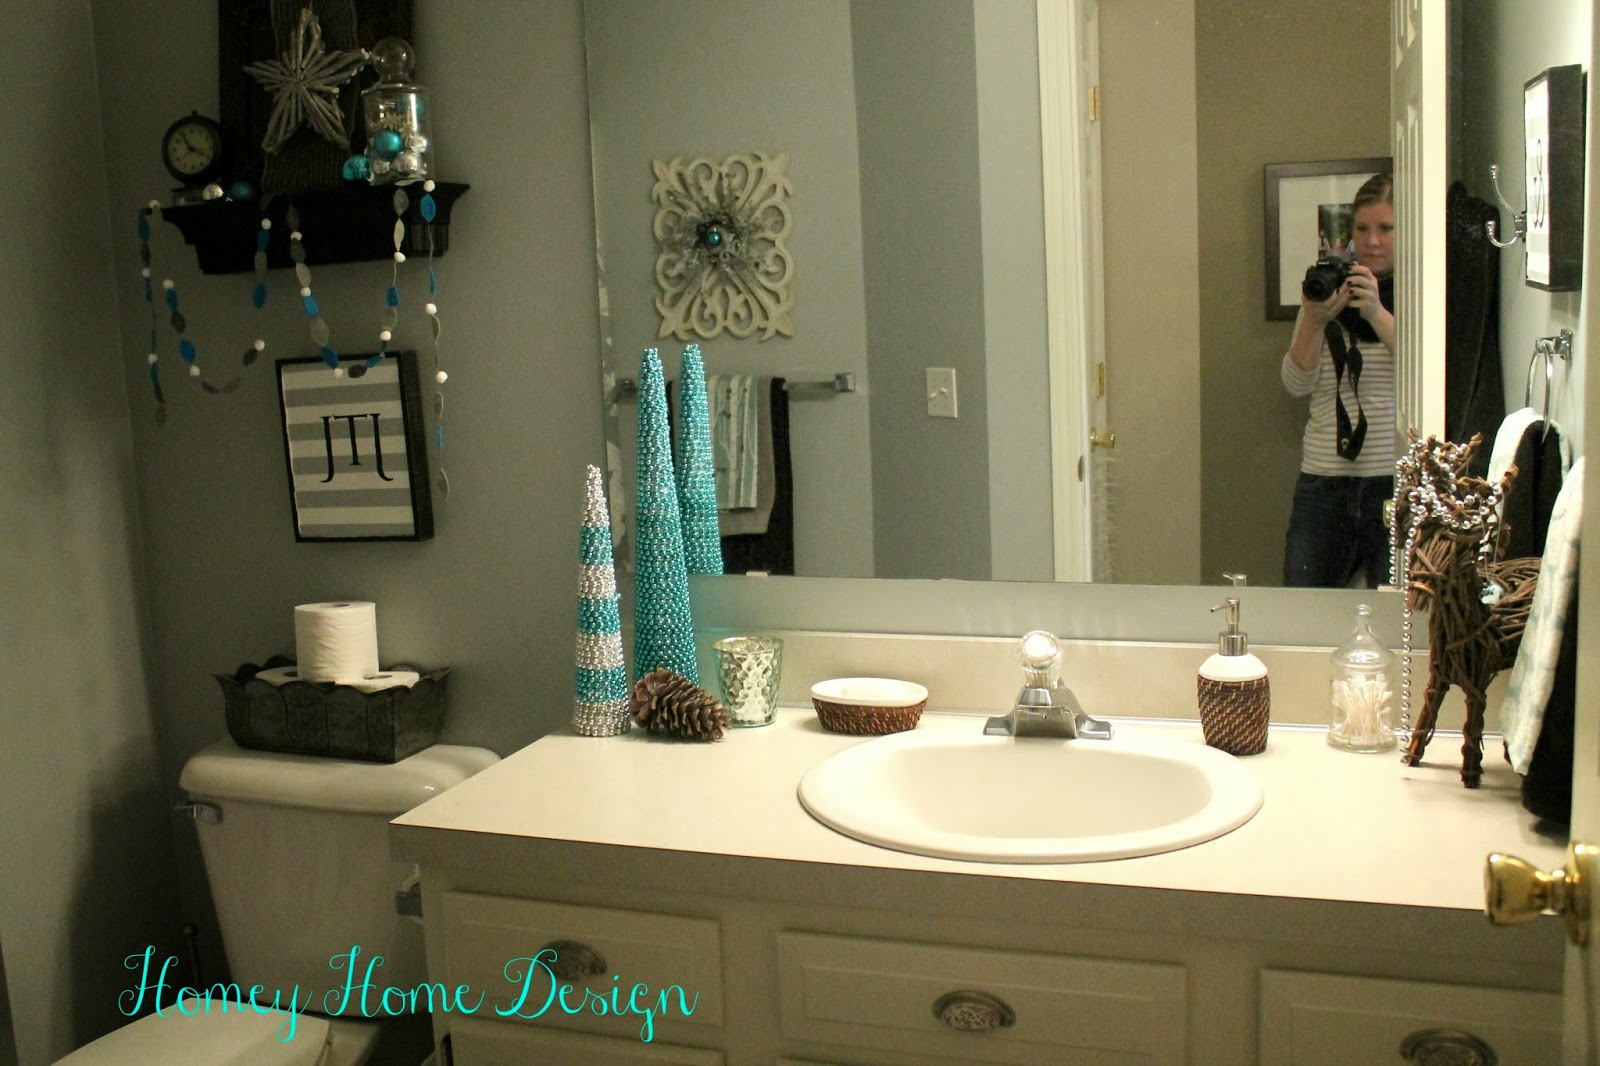 Homey home design bathroom christmas ideas for Bathroom accessories ideas